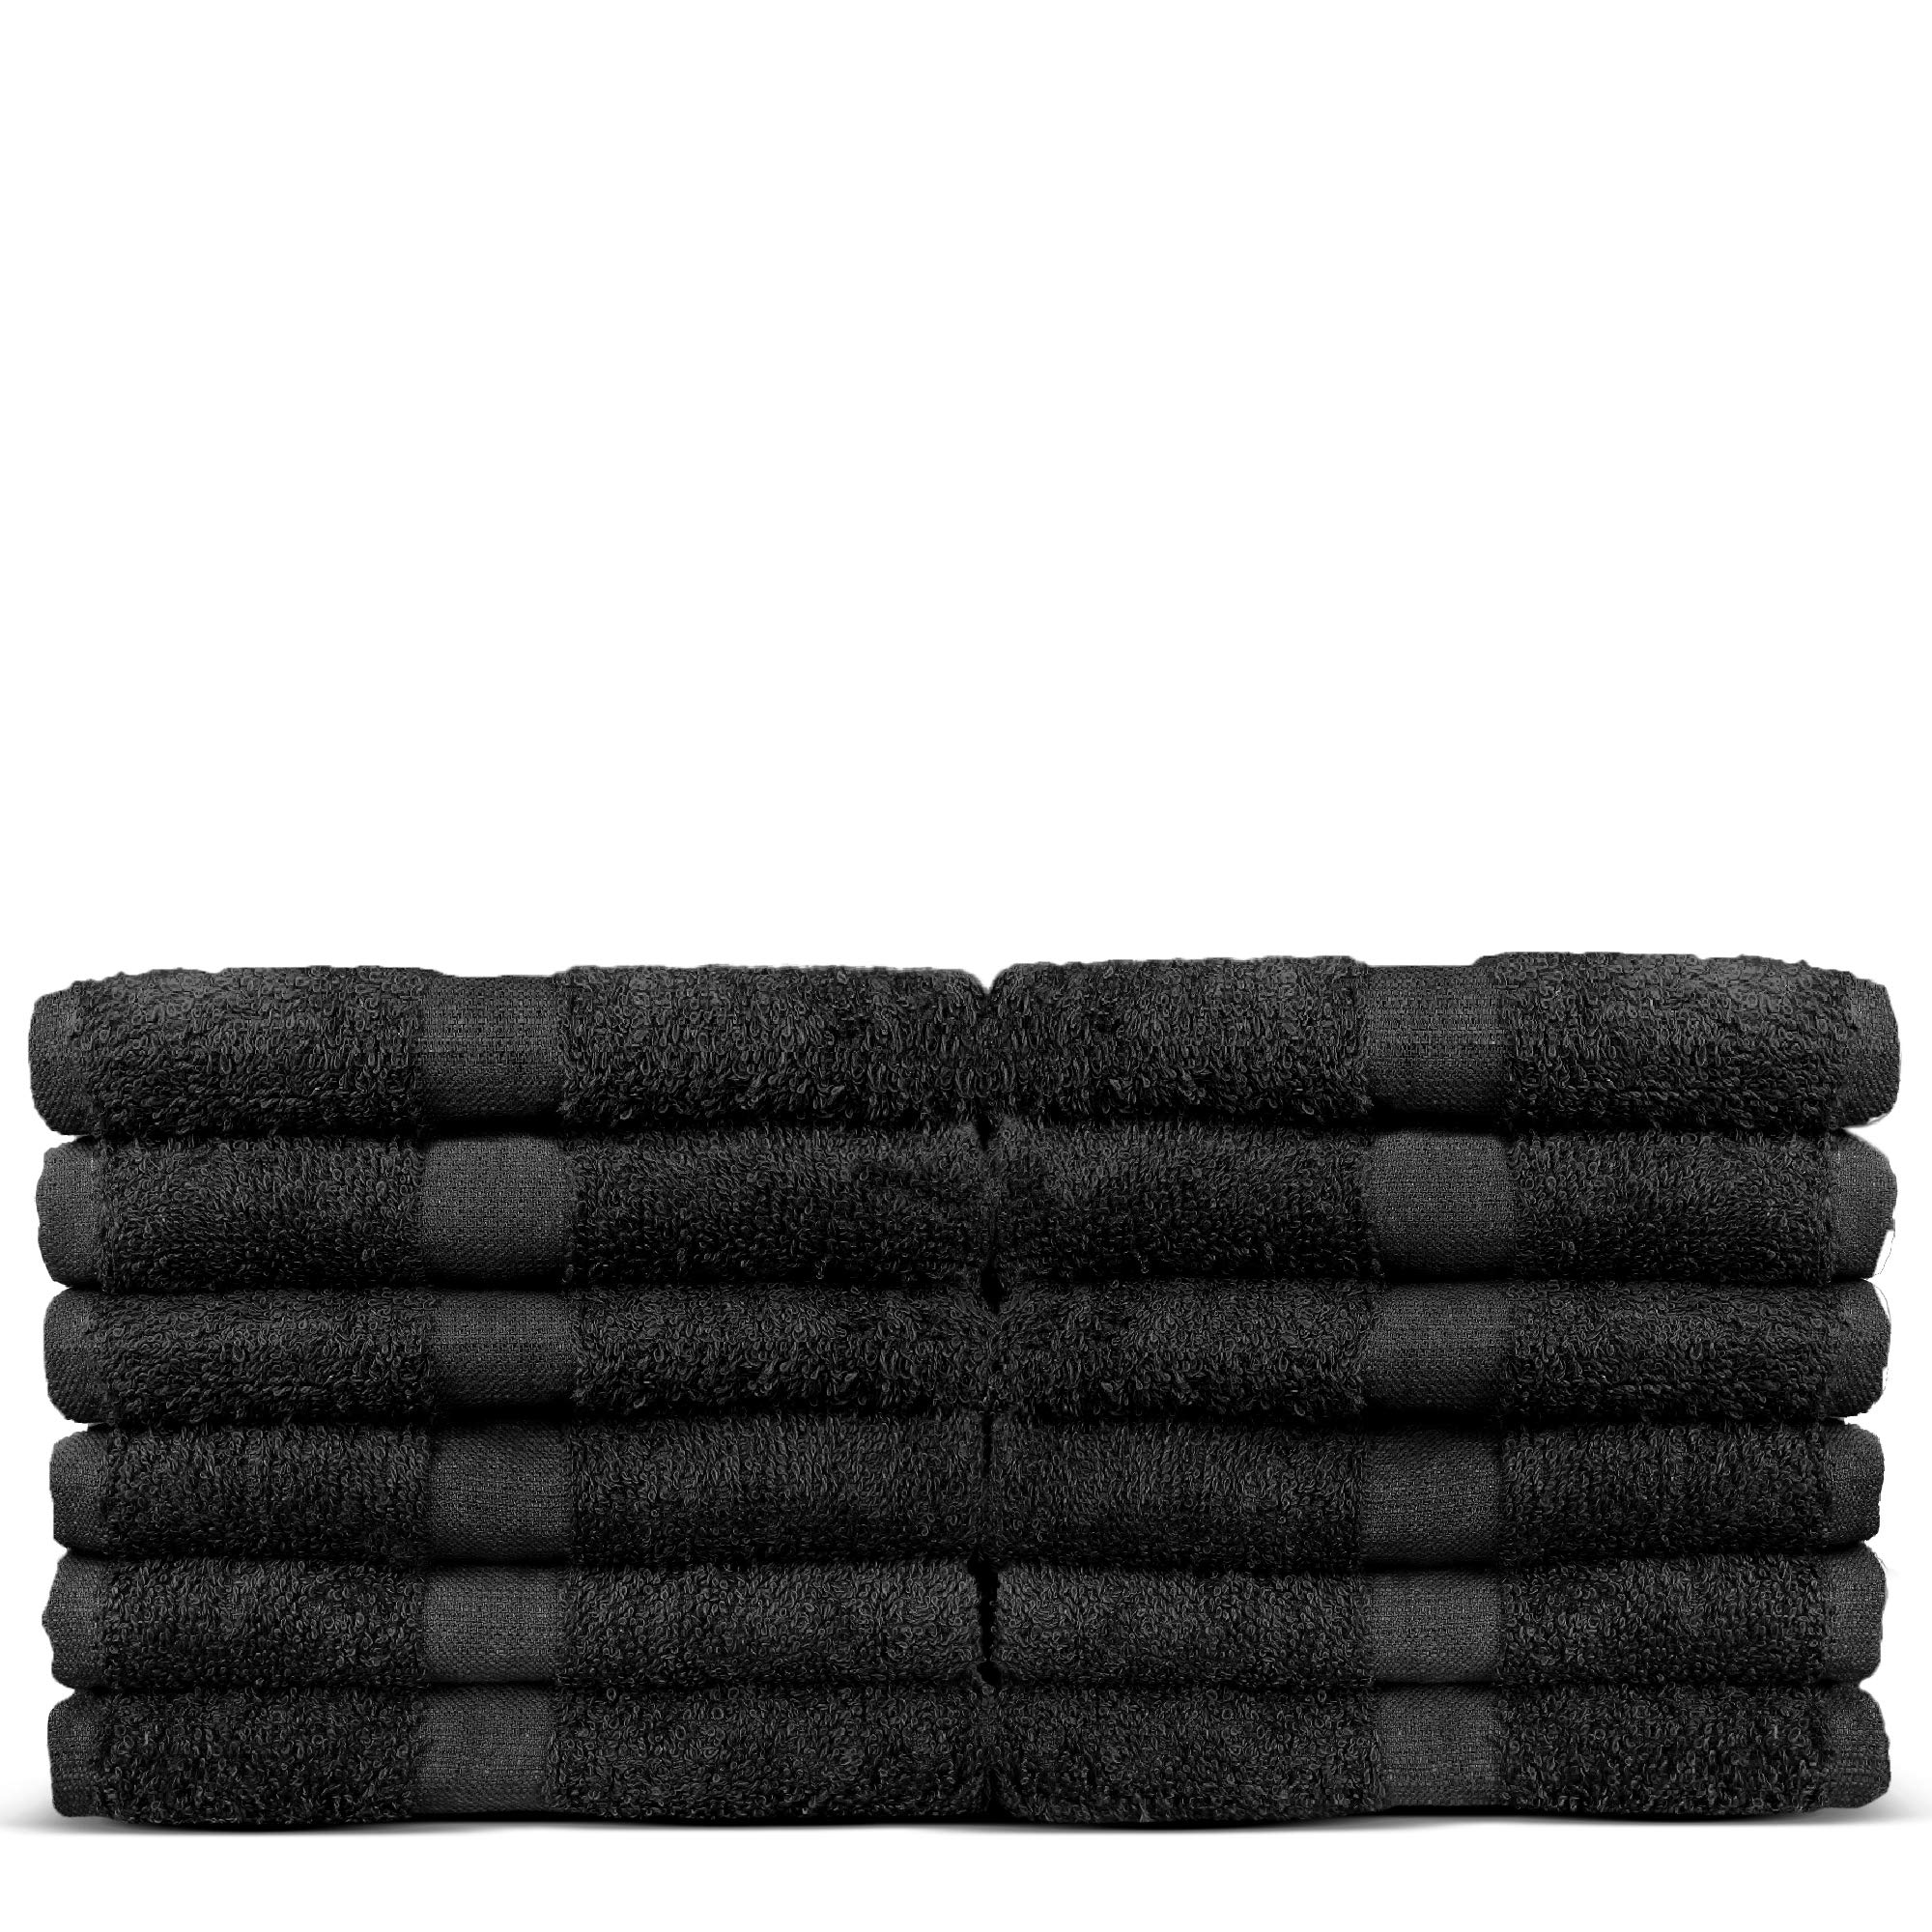 100% Cotton Salon, Hair Drying Towels - Soft and high Absorbent - 16 x 27 inches - 12 - Pack (Salon Towel - Set of 12, Black)